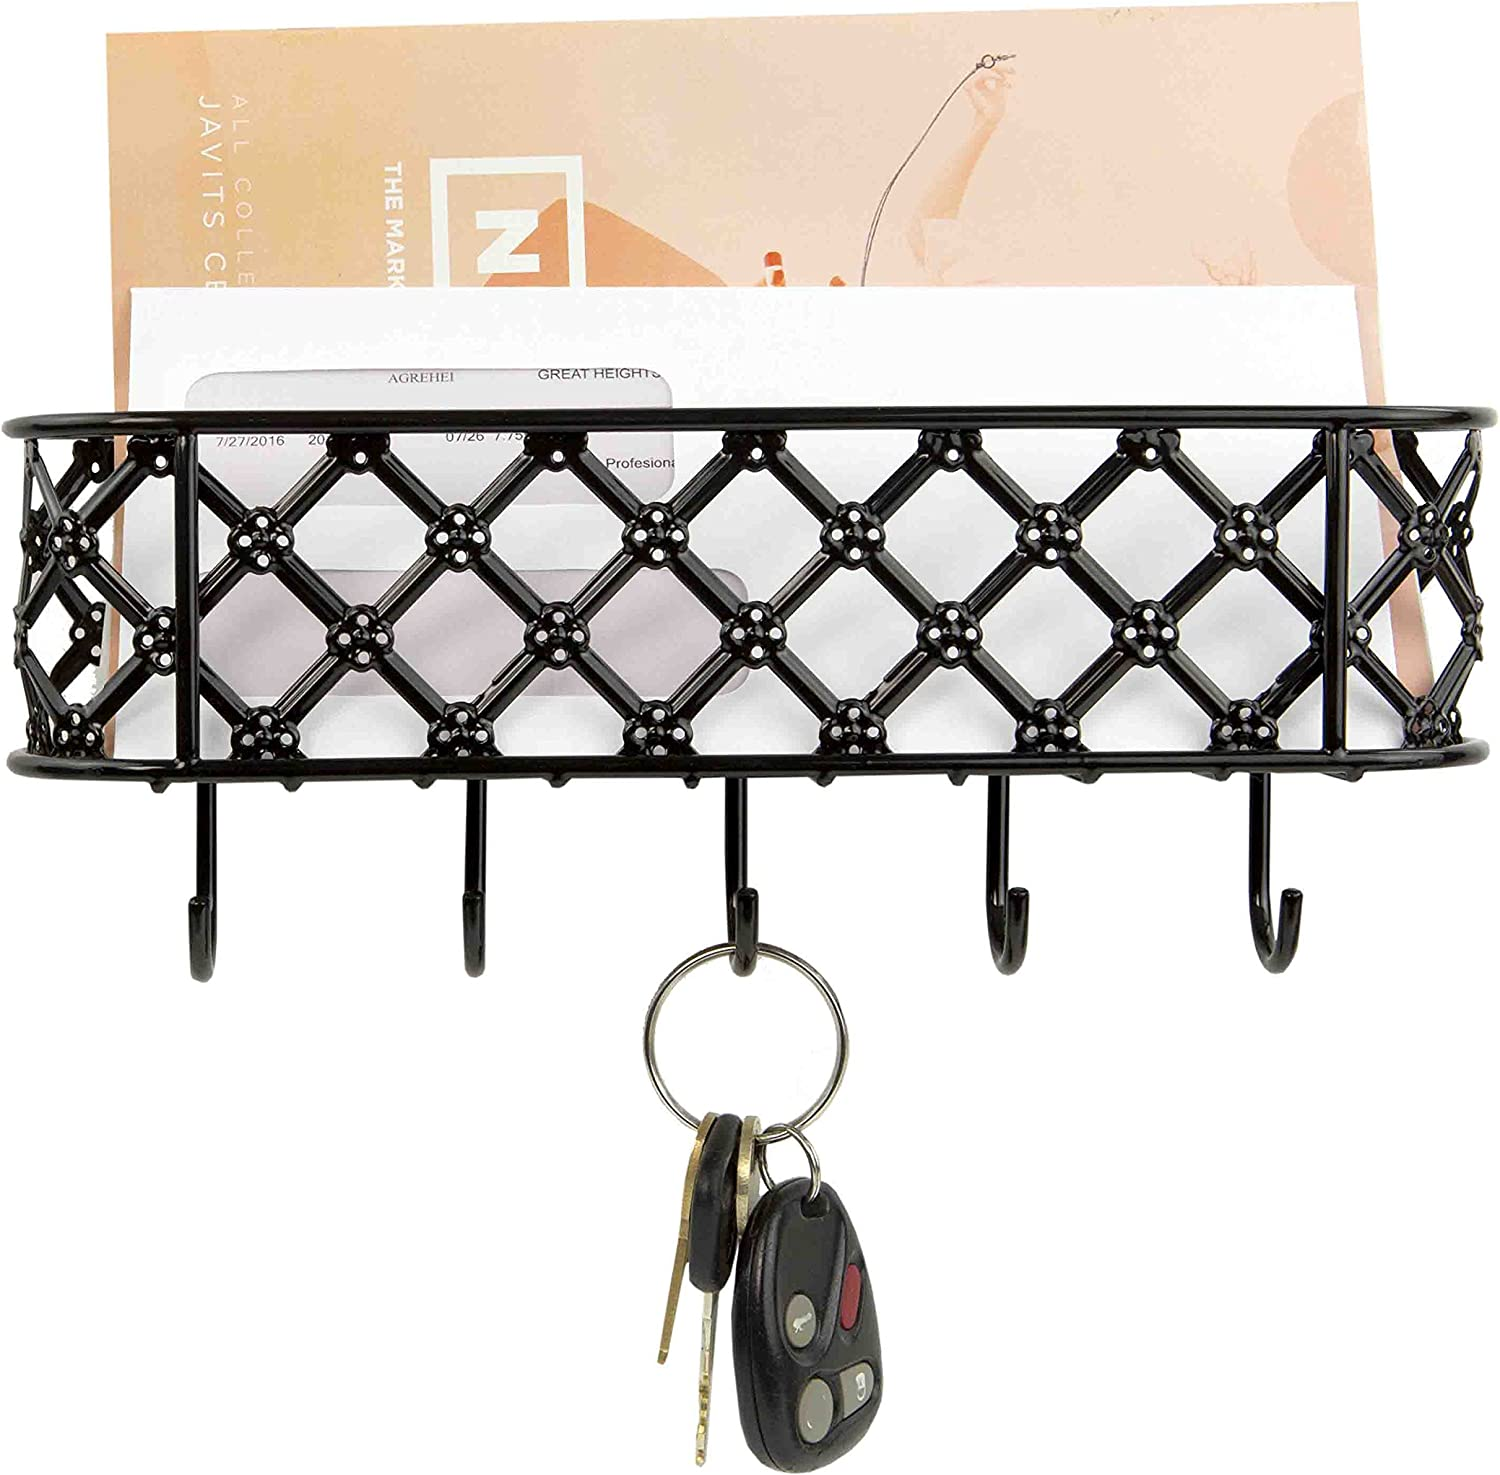 Home Basics Wall Mount Metal Entryway Storage Organizer Mail Sorter Basket with 5 Hooks - Letter, Magazine, Coat, Leash and Key Holder for Entryway, Mudroom, Hallway, Kitchen, Office, Black